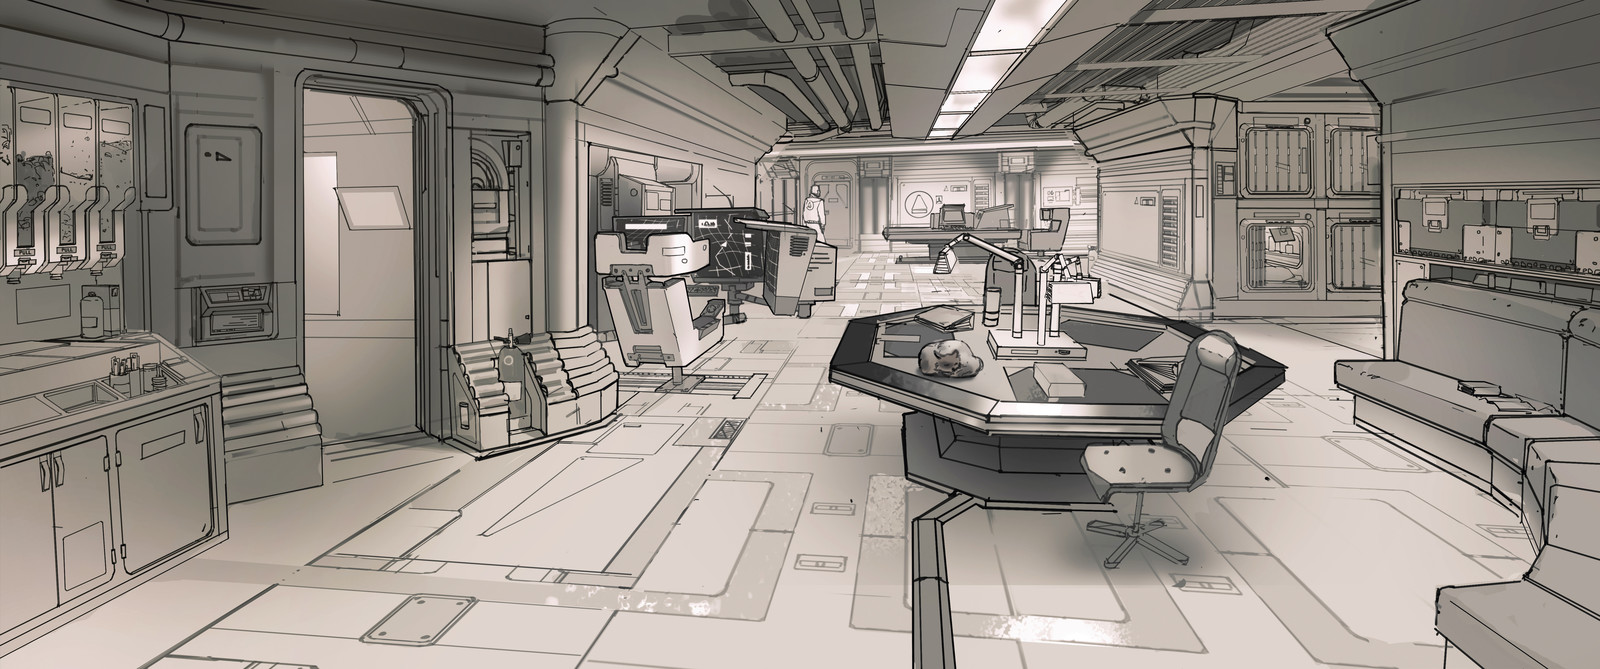 Demo - Sci-fi Station Interior design